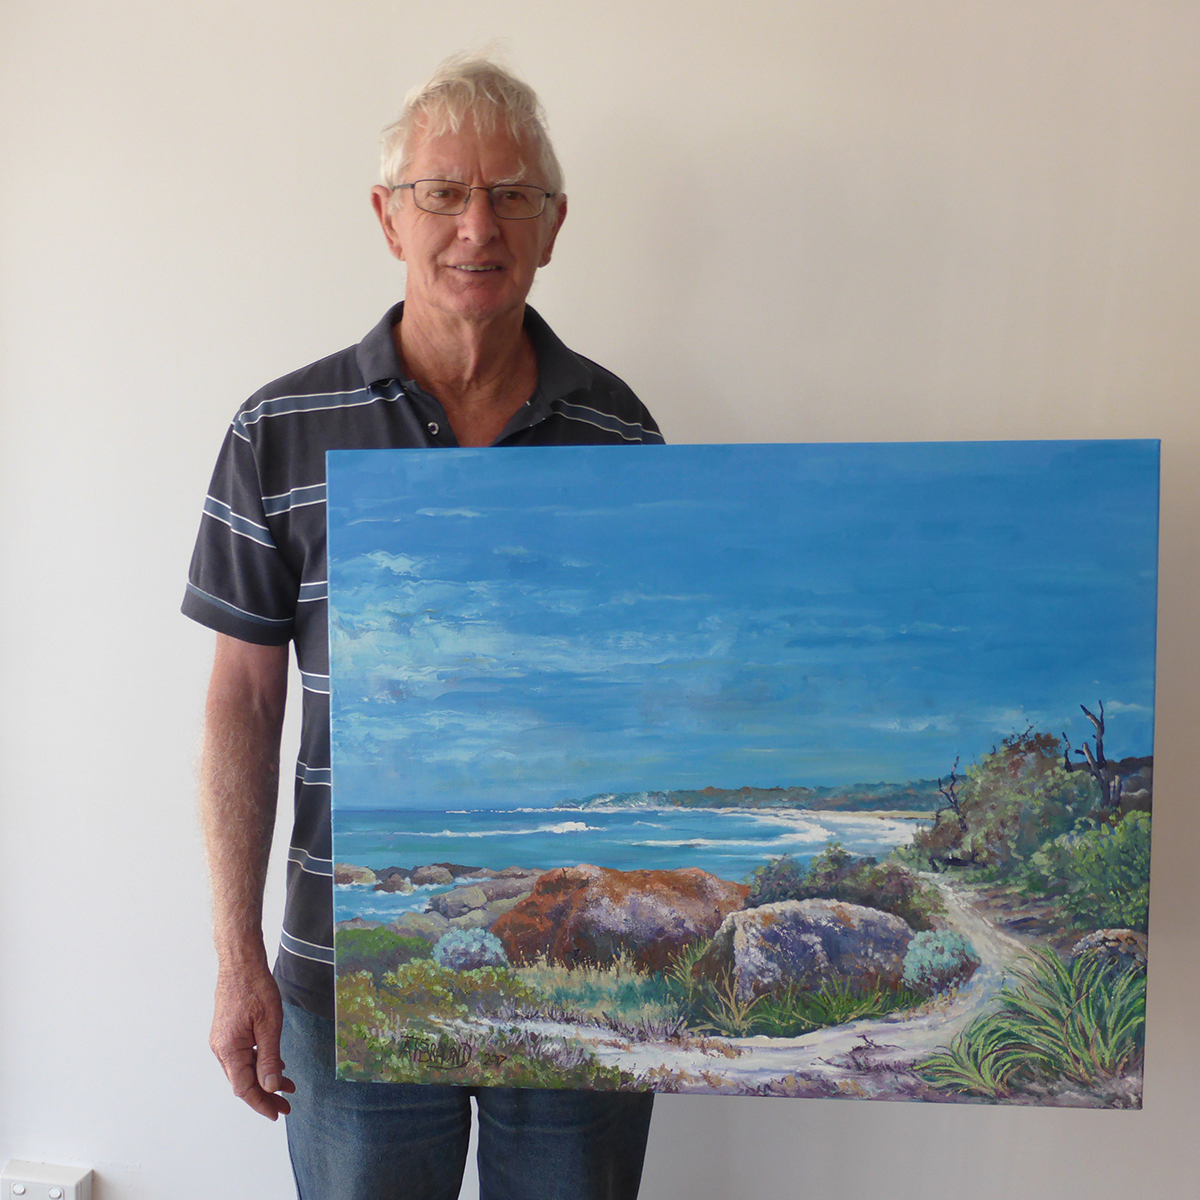 Second Prize:   BERRY BAY by Terry Braund   Paining 76cm x 61cm valued at $550.00